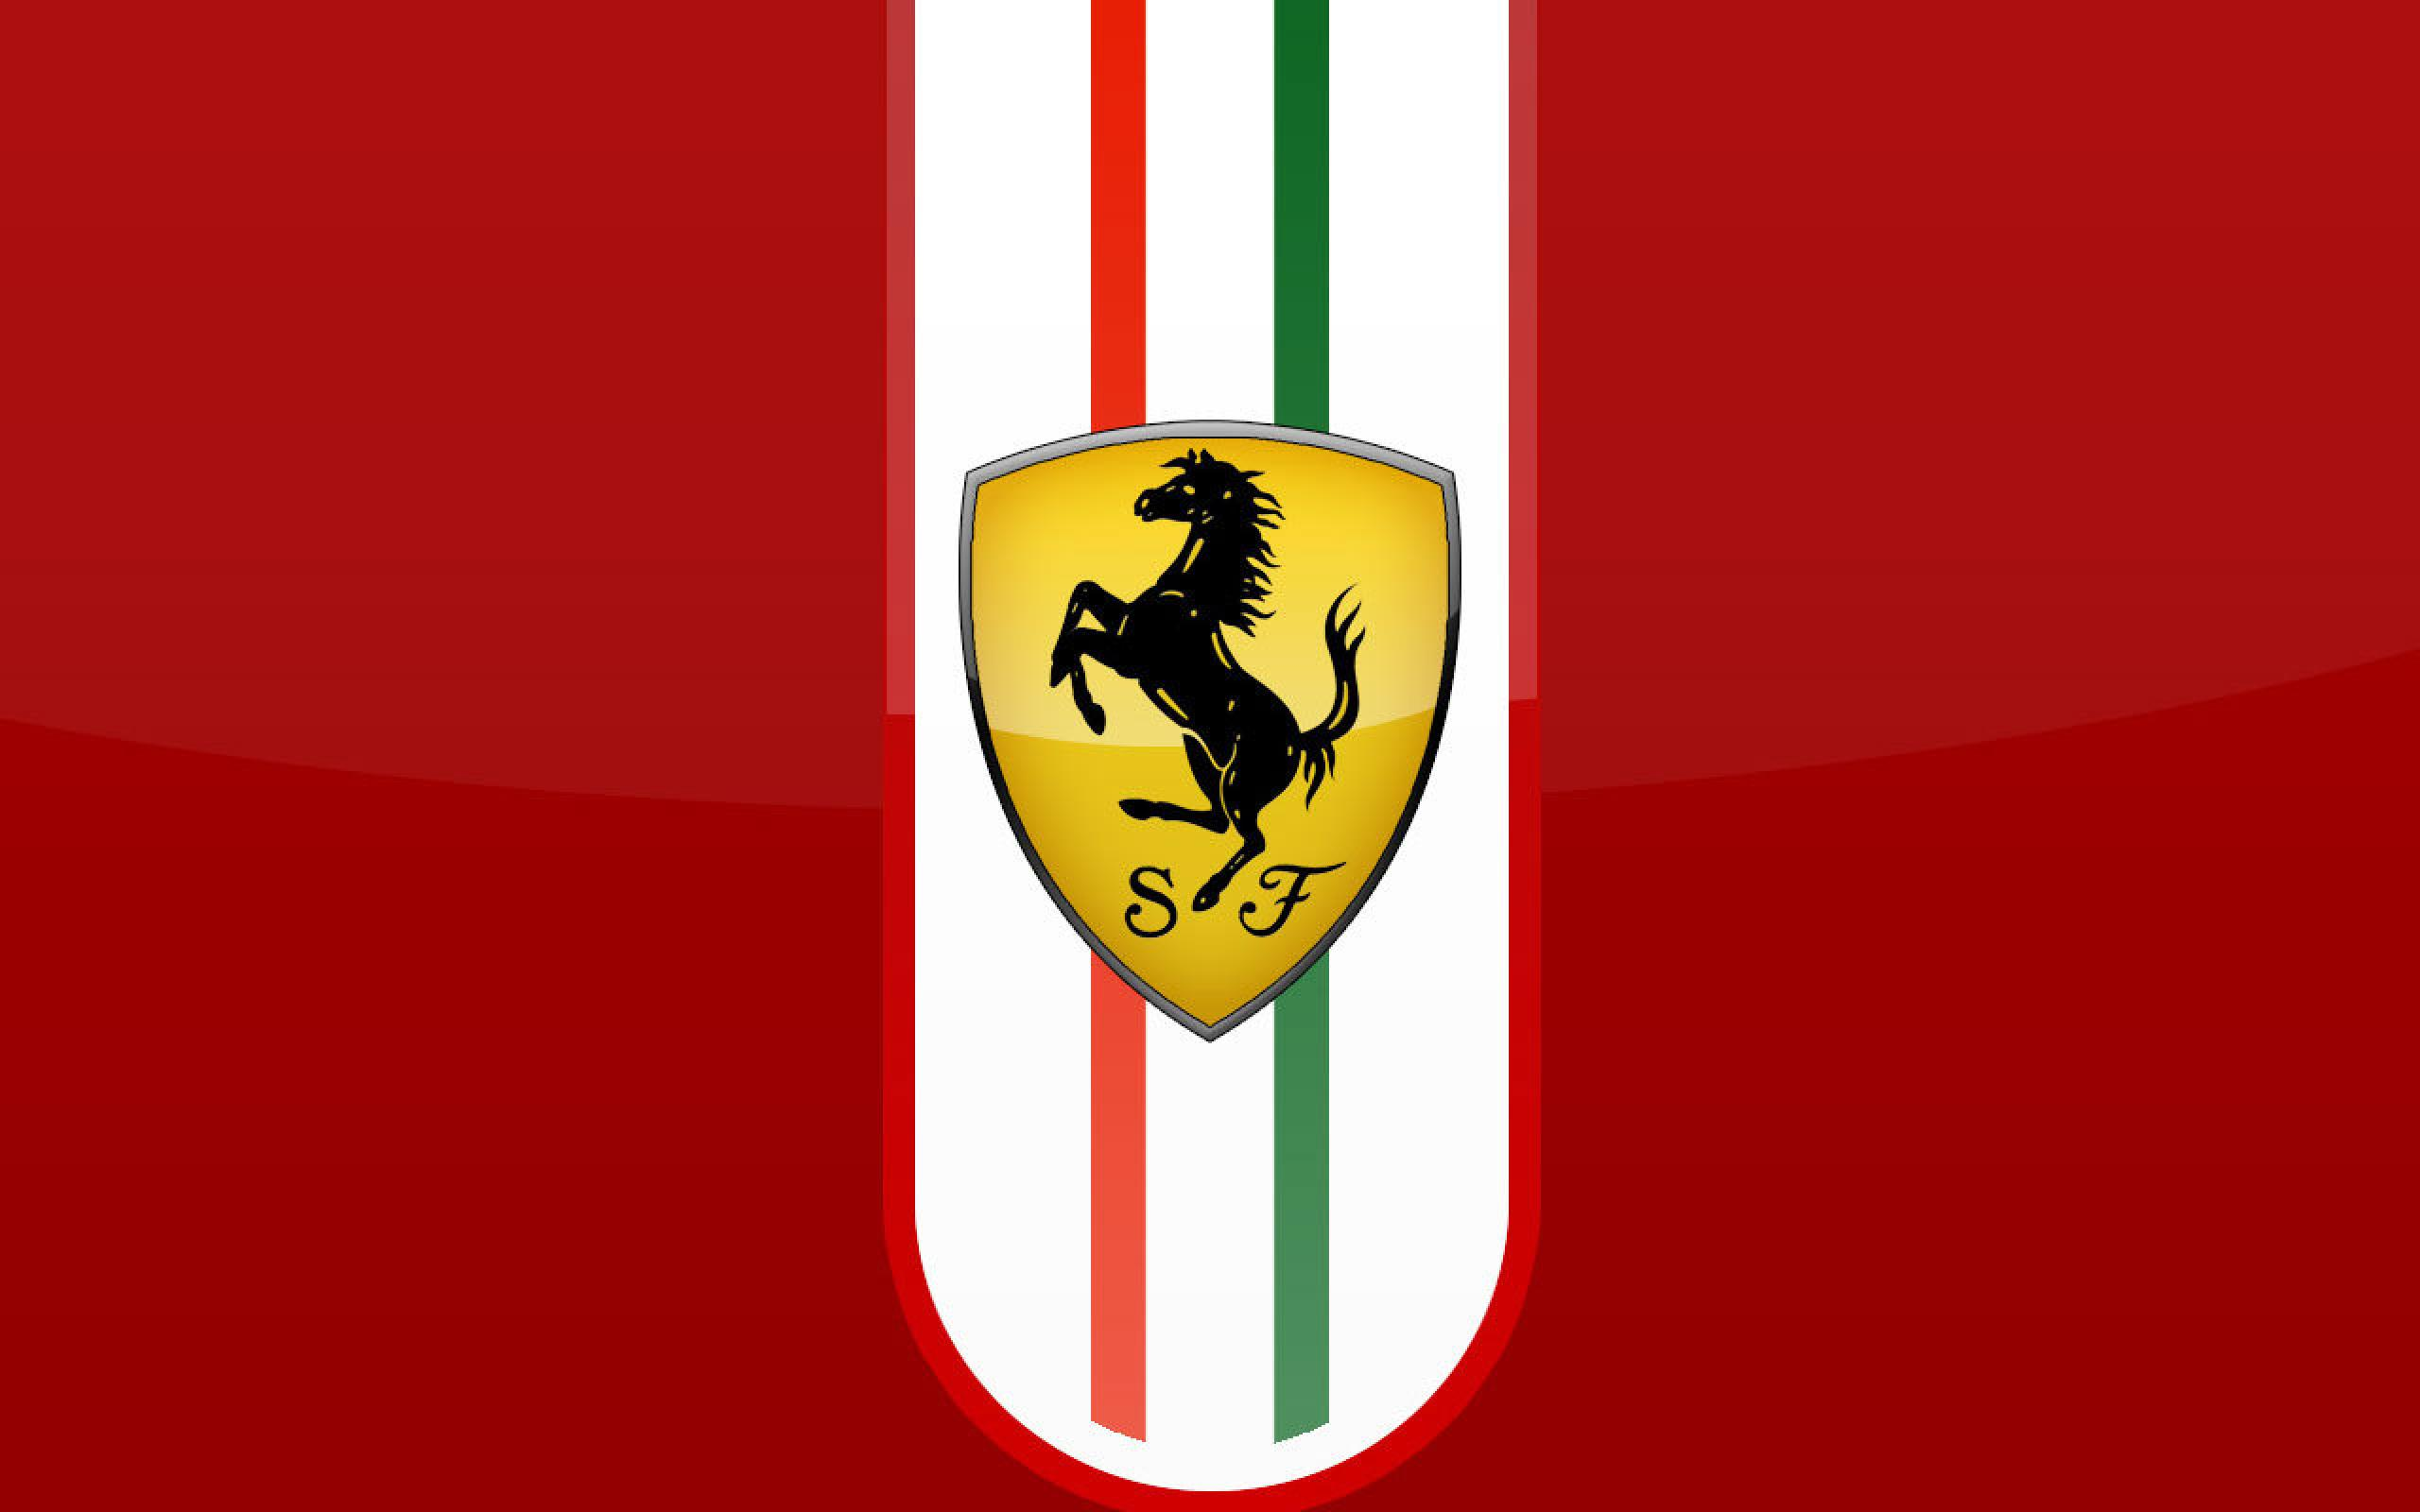 Ferrari Logo HD Wallpaper - HD Wallpapers Inn